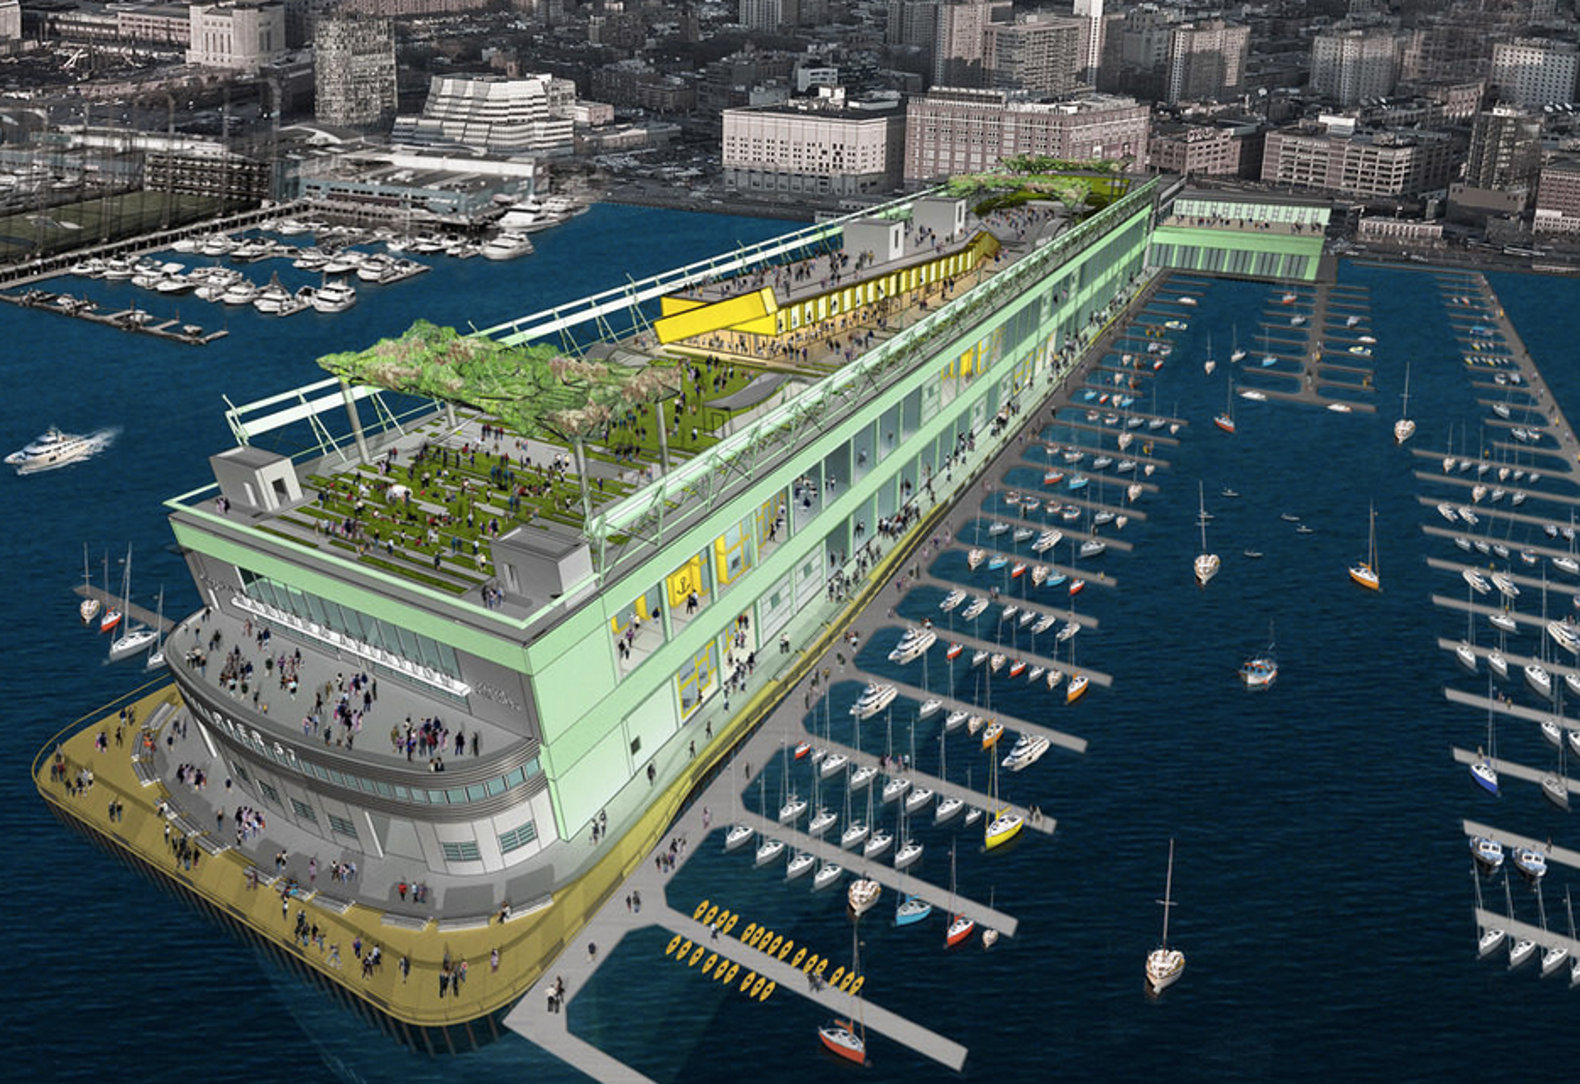 New designs for SuperPier shipping container mall's 13,339-square-foot rooftop park revealed